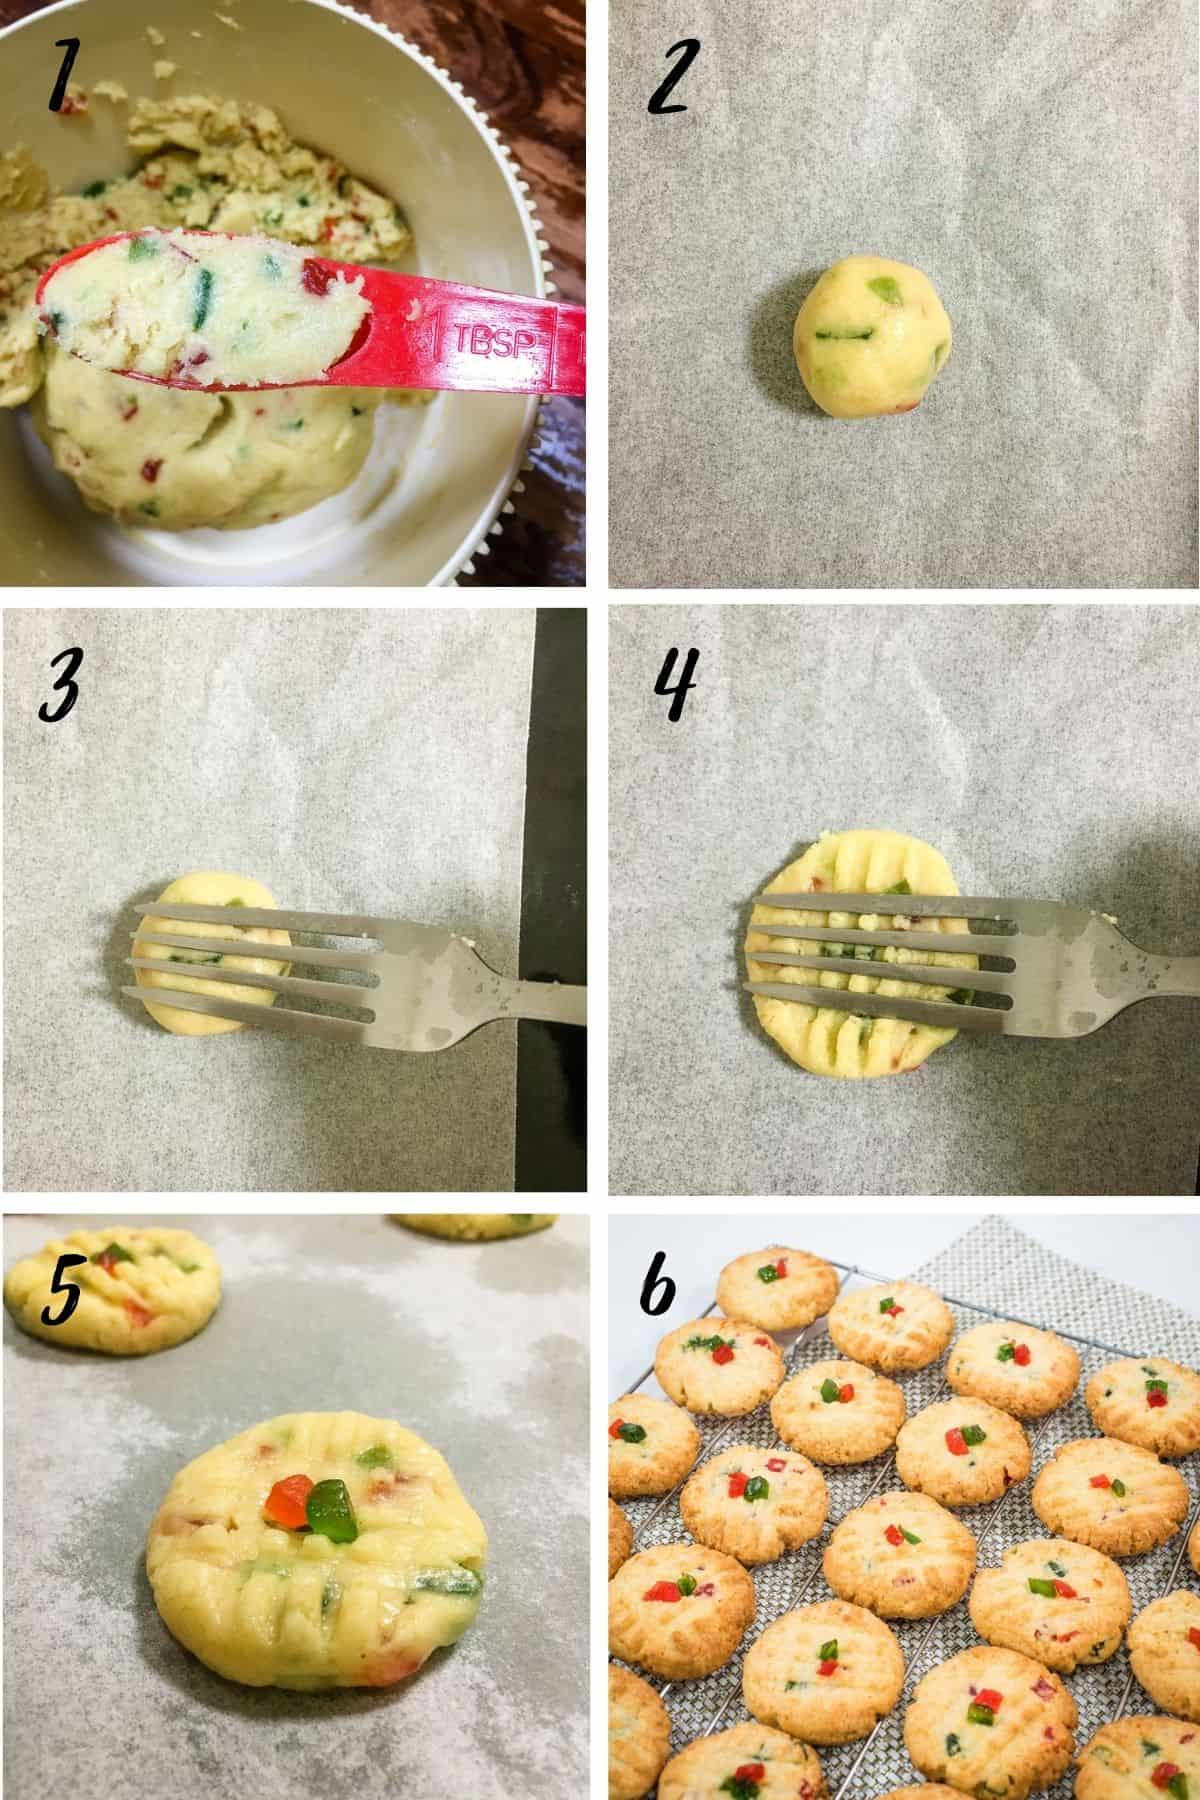 A poster of 6 images showing how to use a fork to make design on the cookies, the cookies topped with glace cherries and a wire rack of baked cookies